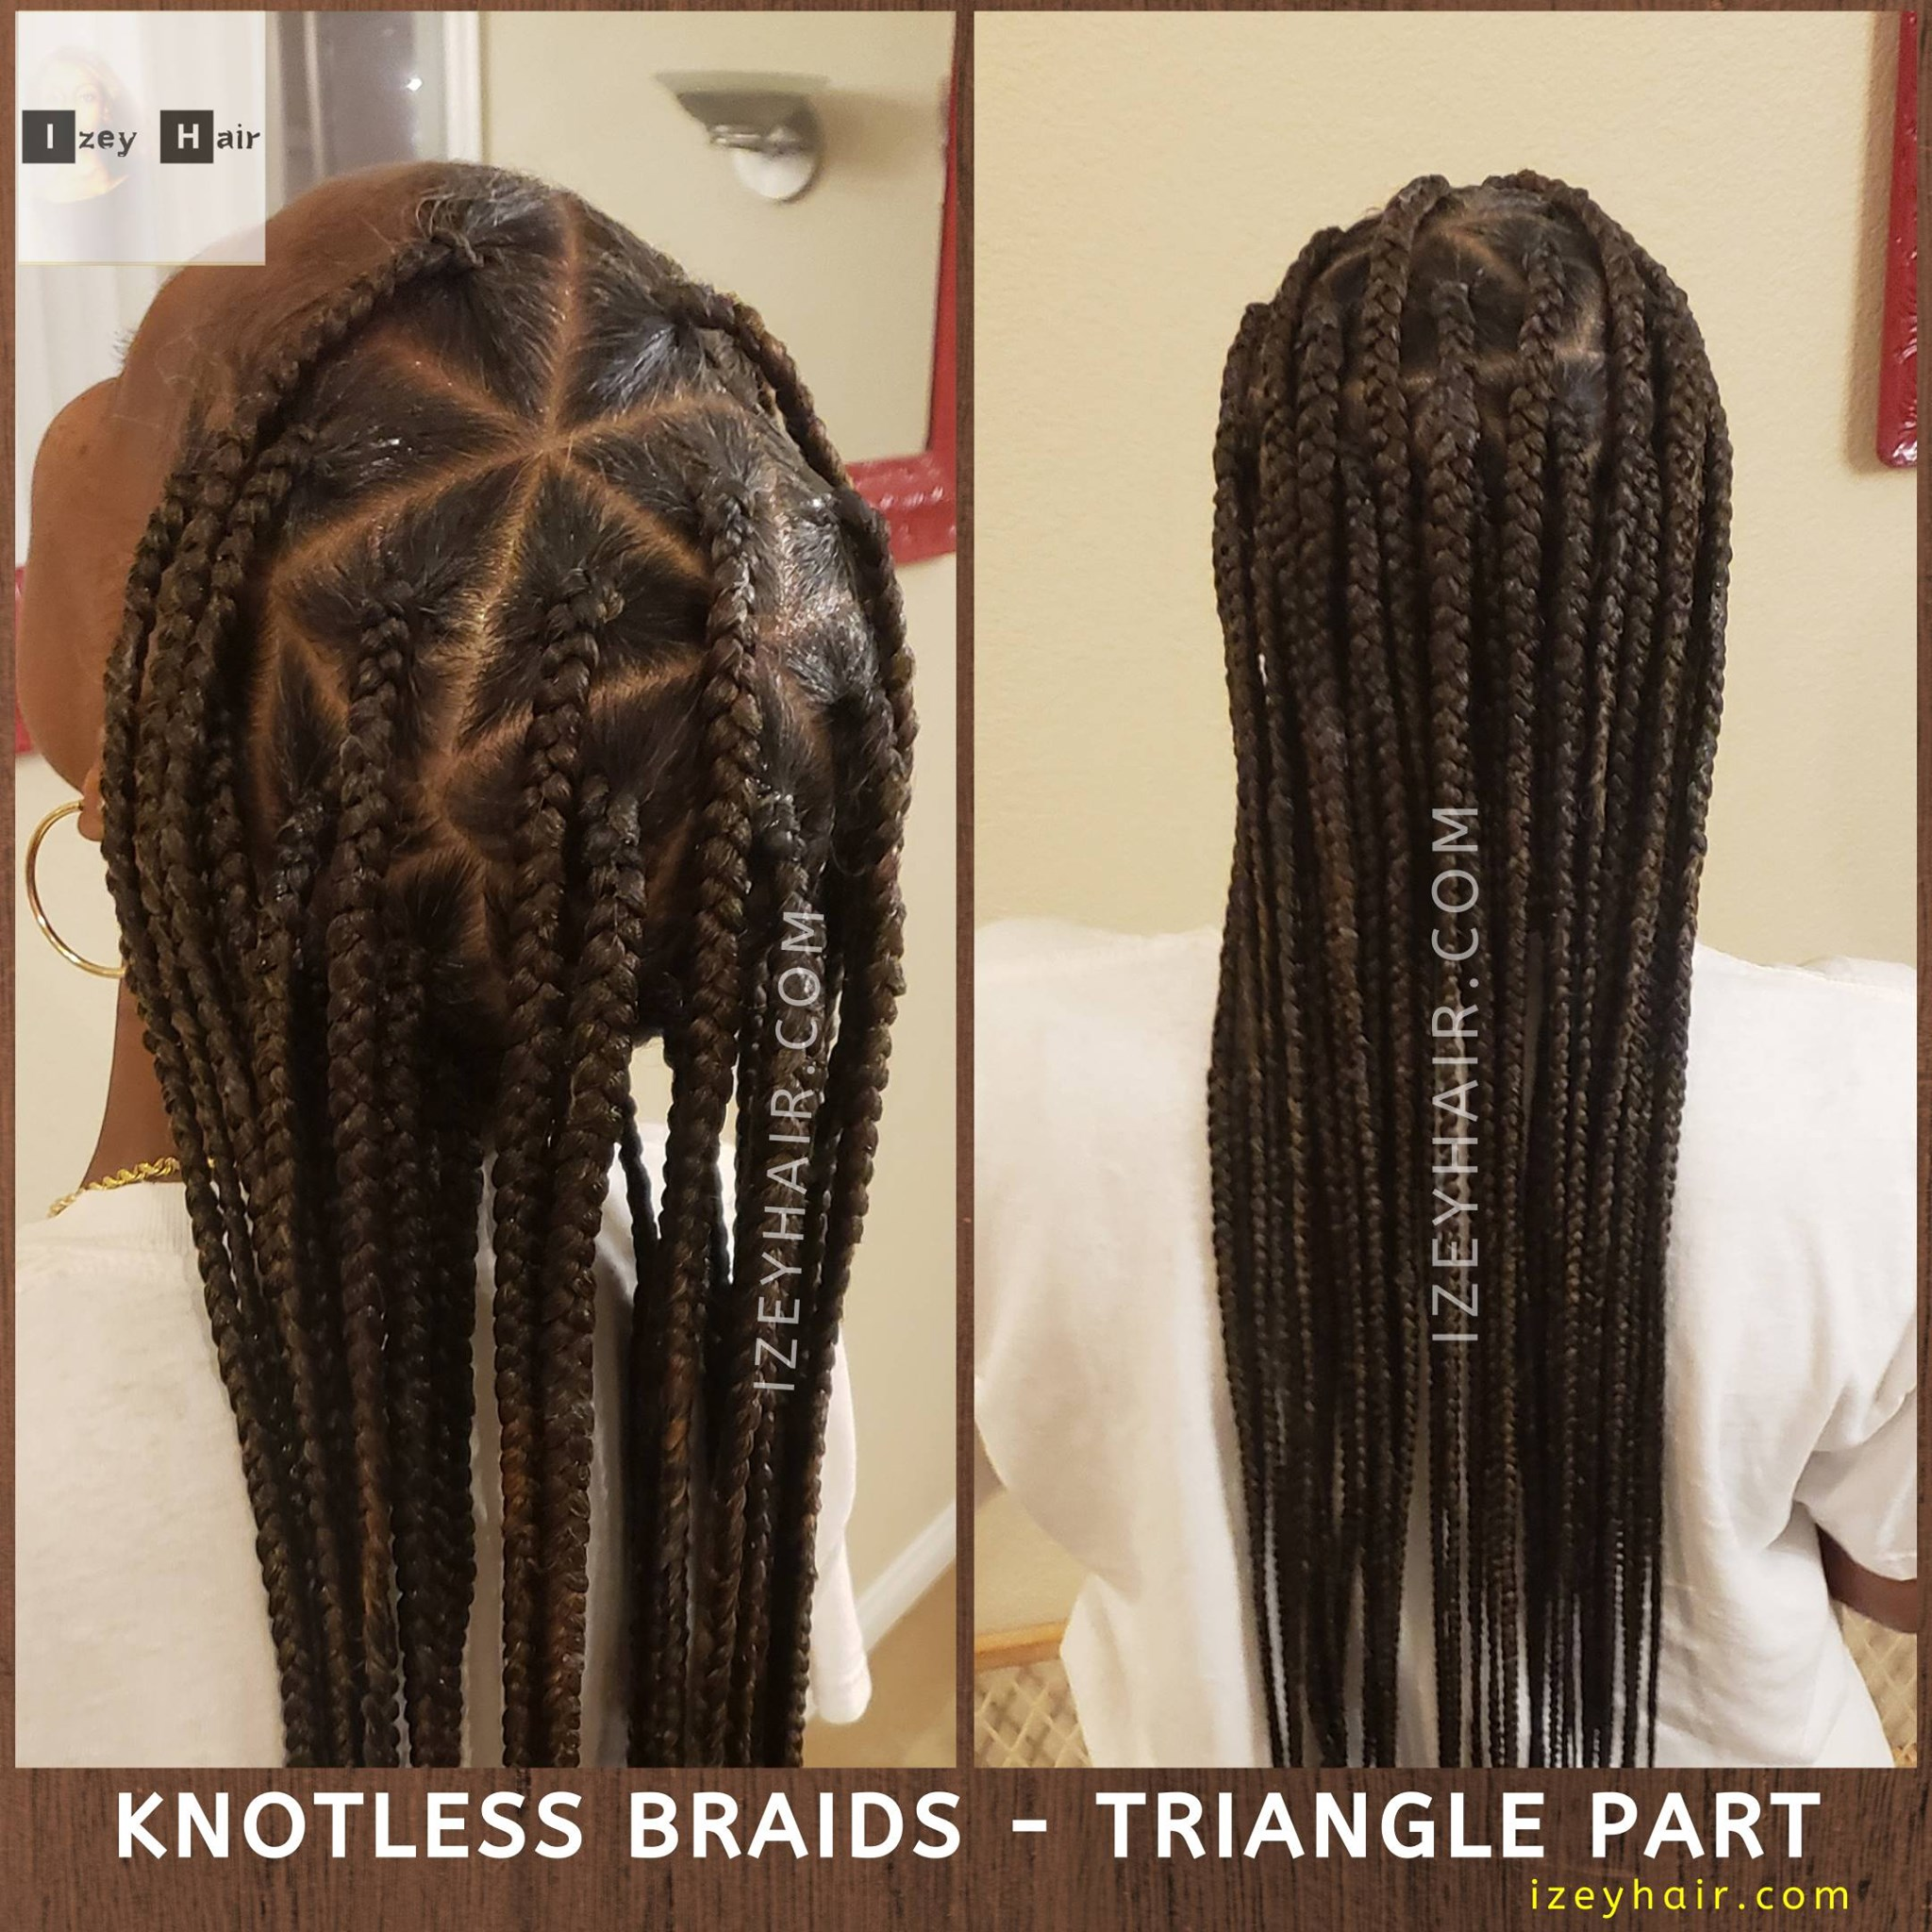 Knotless Braids - Triangle Parts